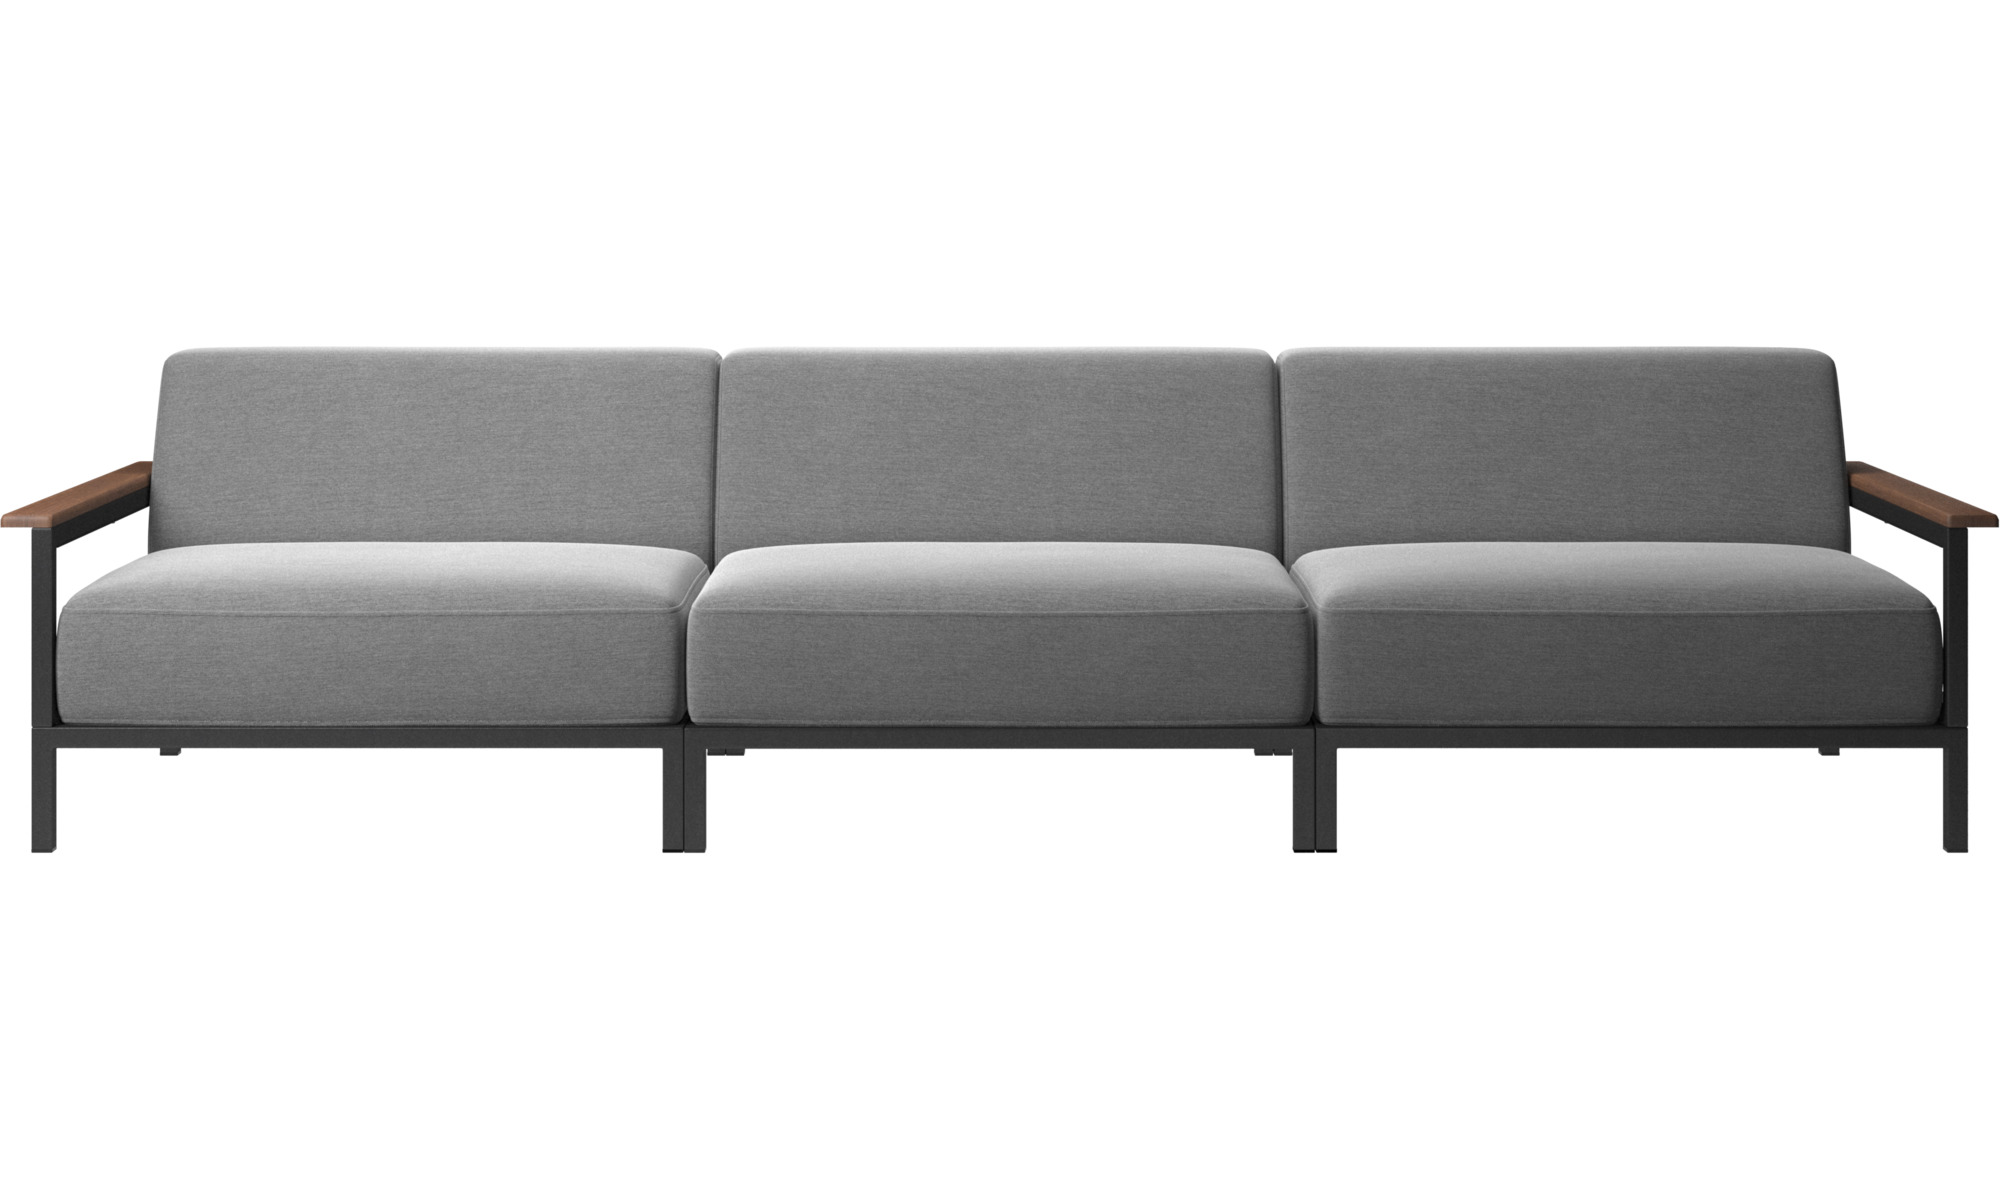 Full Size of Sofa Stoff Grau Outdoor Sofas Rome Boconcept Patchwork Hussen Blaues überzug Rolf Benz Weiches In L Form Angebote Microfaser Mit Relaxfunktion 3 Sitzer Sofa Sofa Stoff Grau